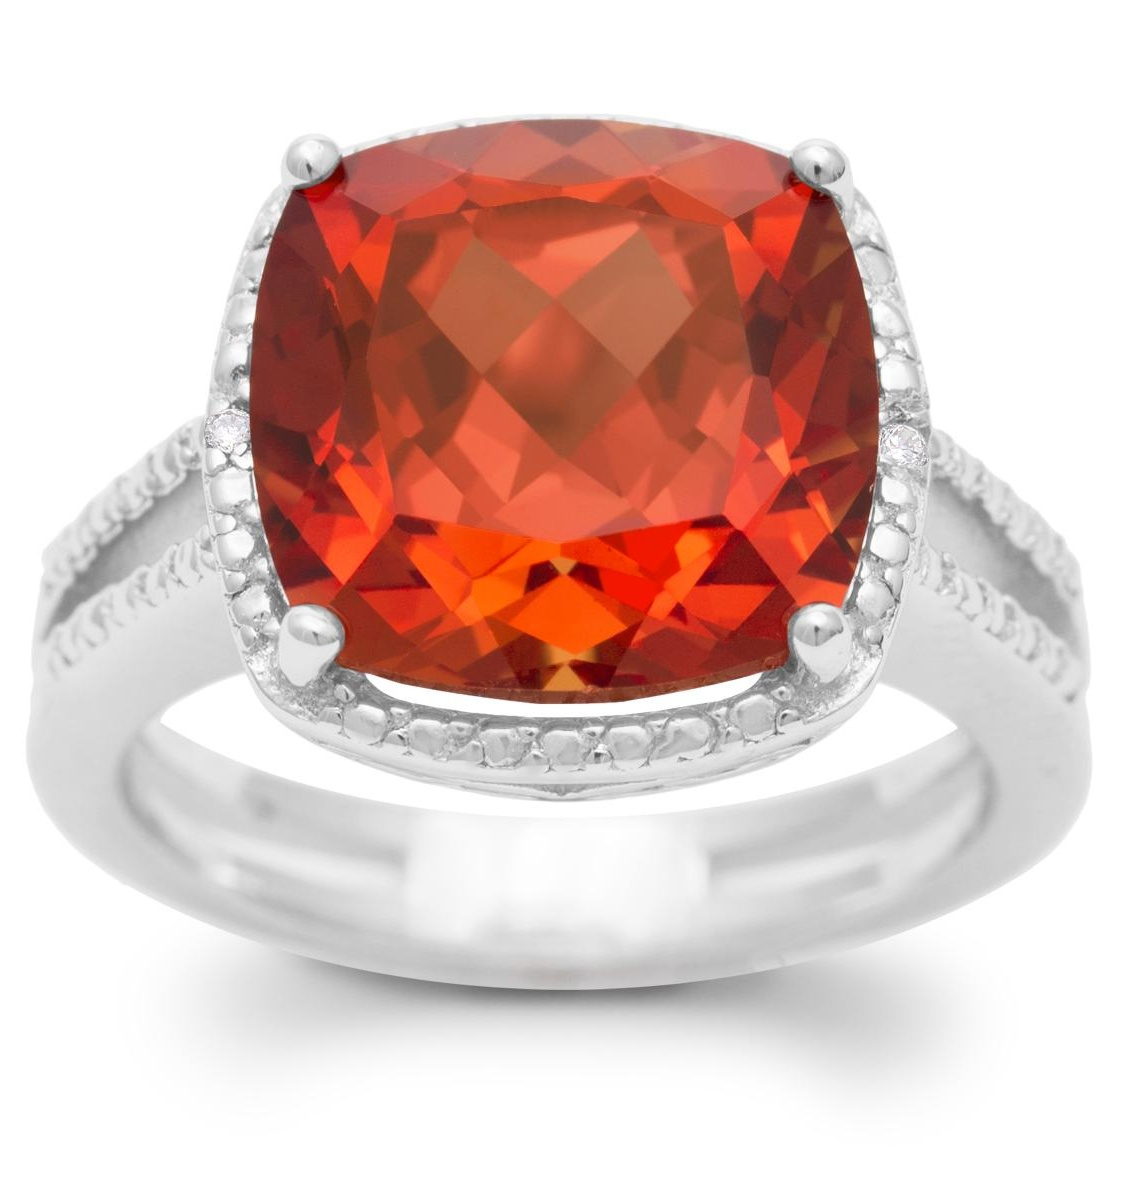 5 1/3 Carat Split Shank Cushion Cut Created Padparadscha Sapphire and Diamond Ring In Sterling Silver - 6.5